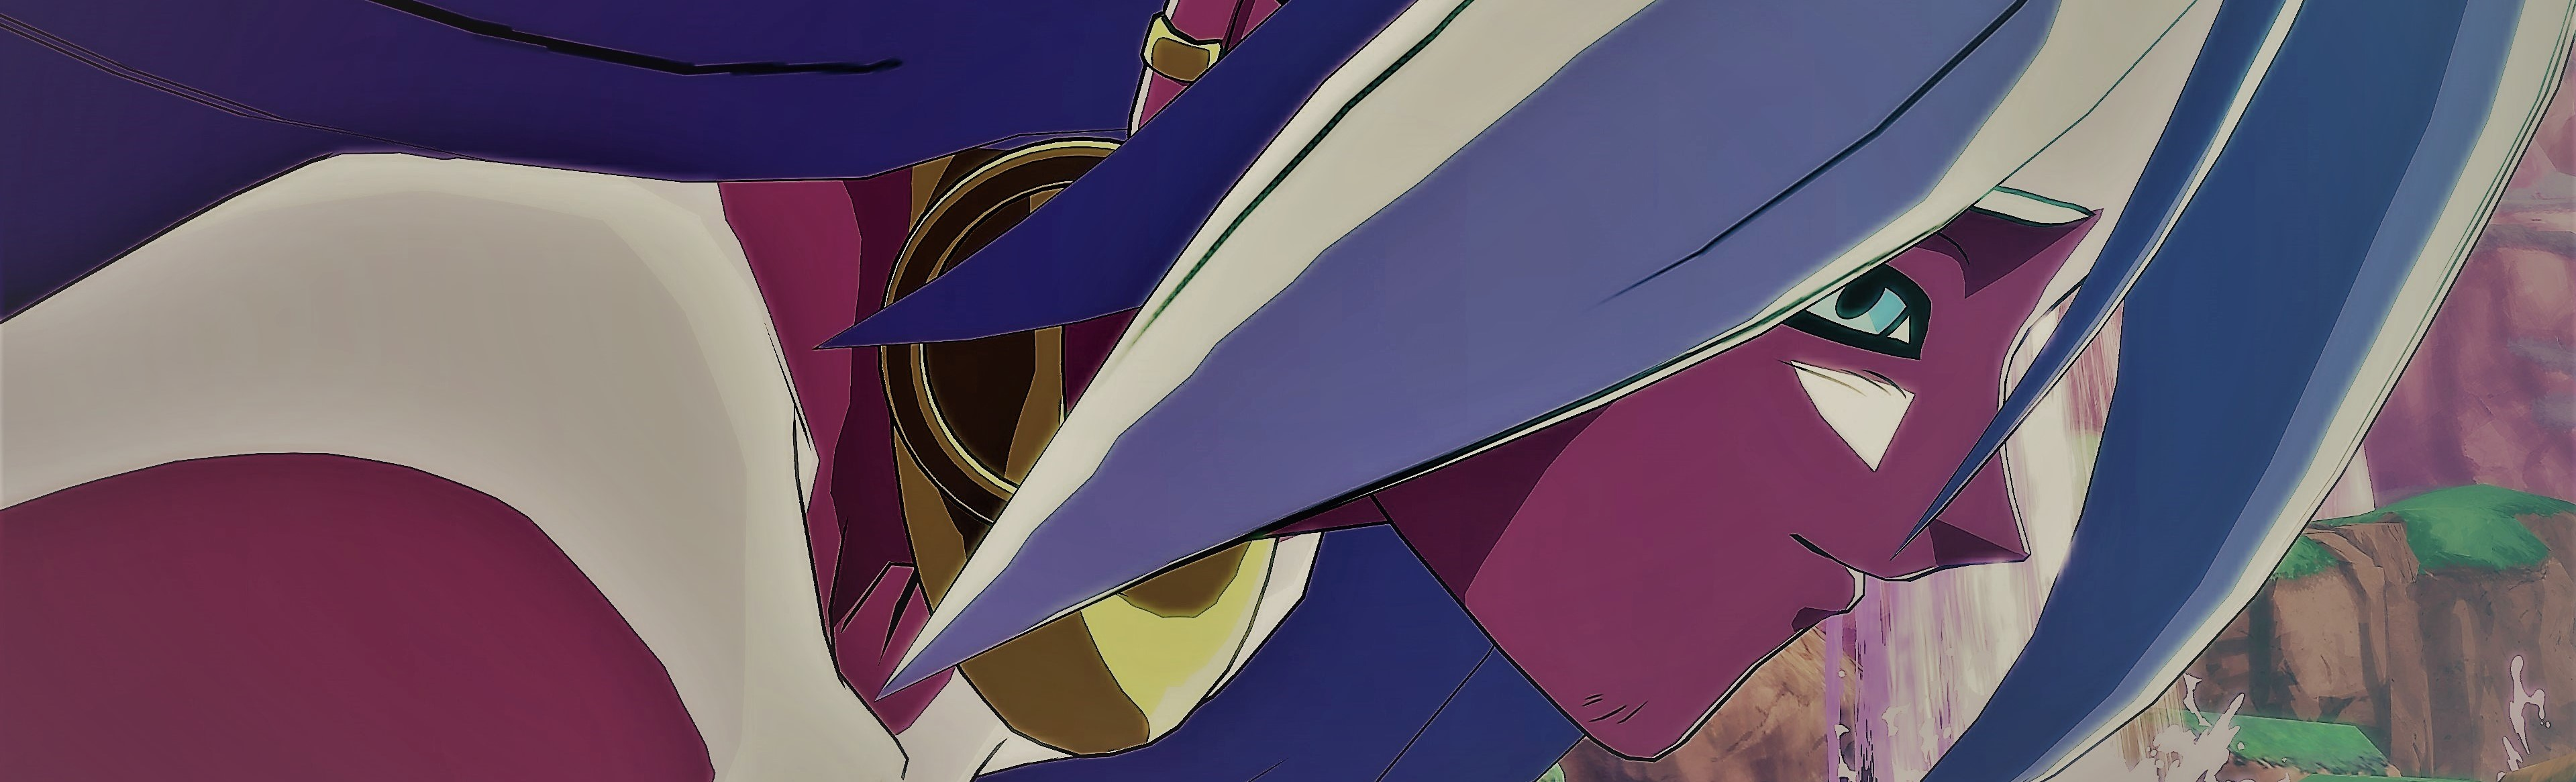 Android 21 (Good) Banner Image - ID: 188099 - Image Abyss